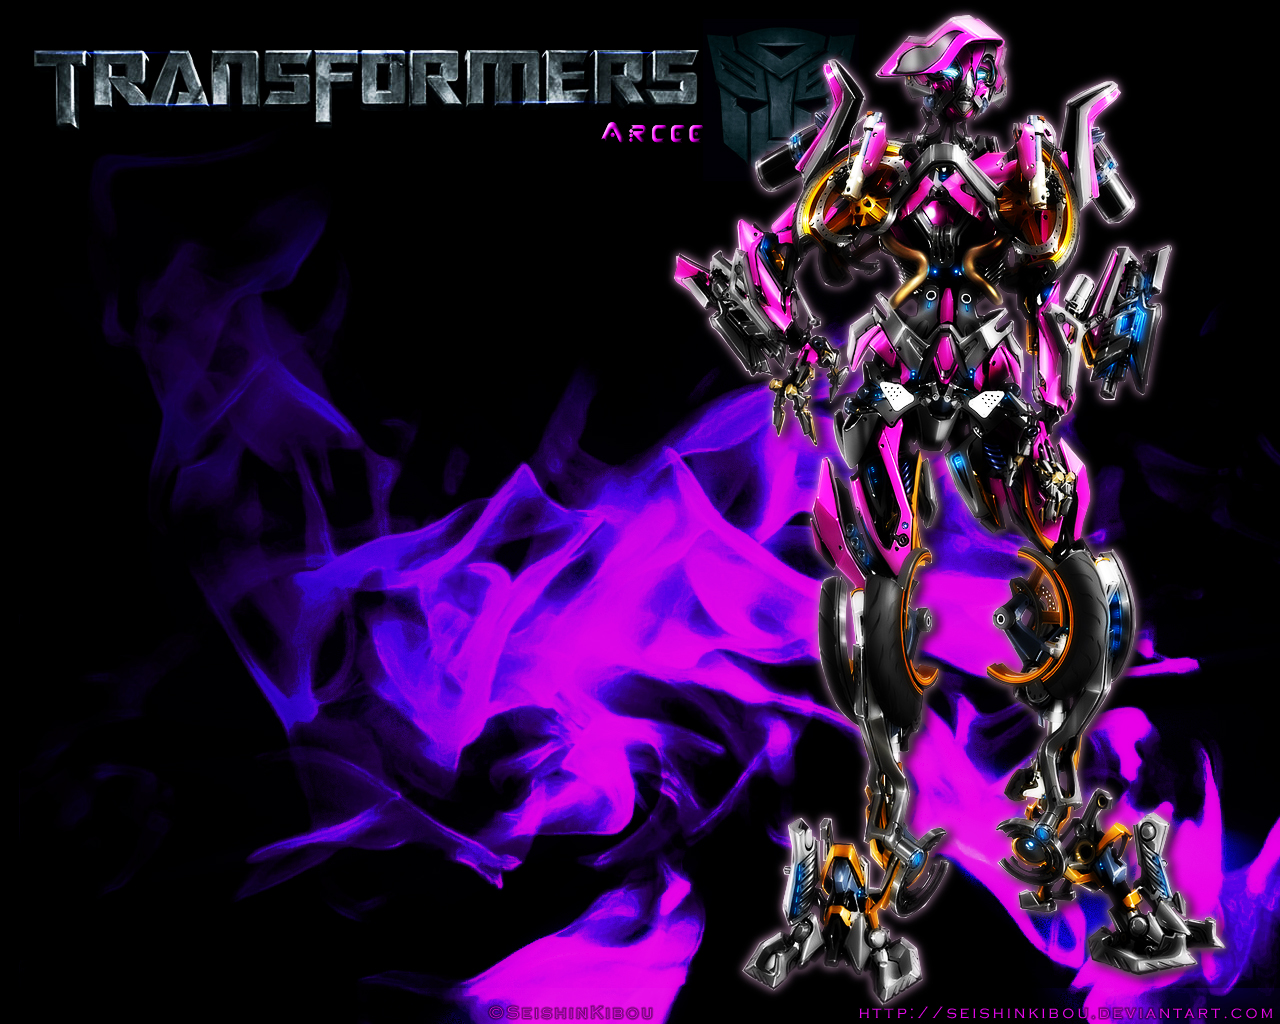 Transformers Movie Wallpapers Full Size   Transformers Movie Arcee 1280x1024